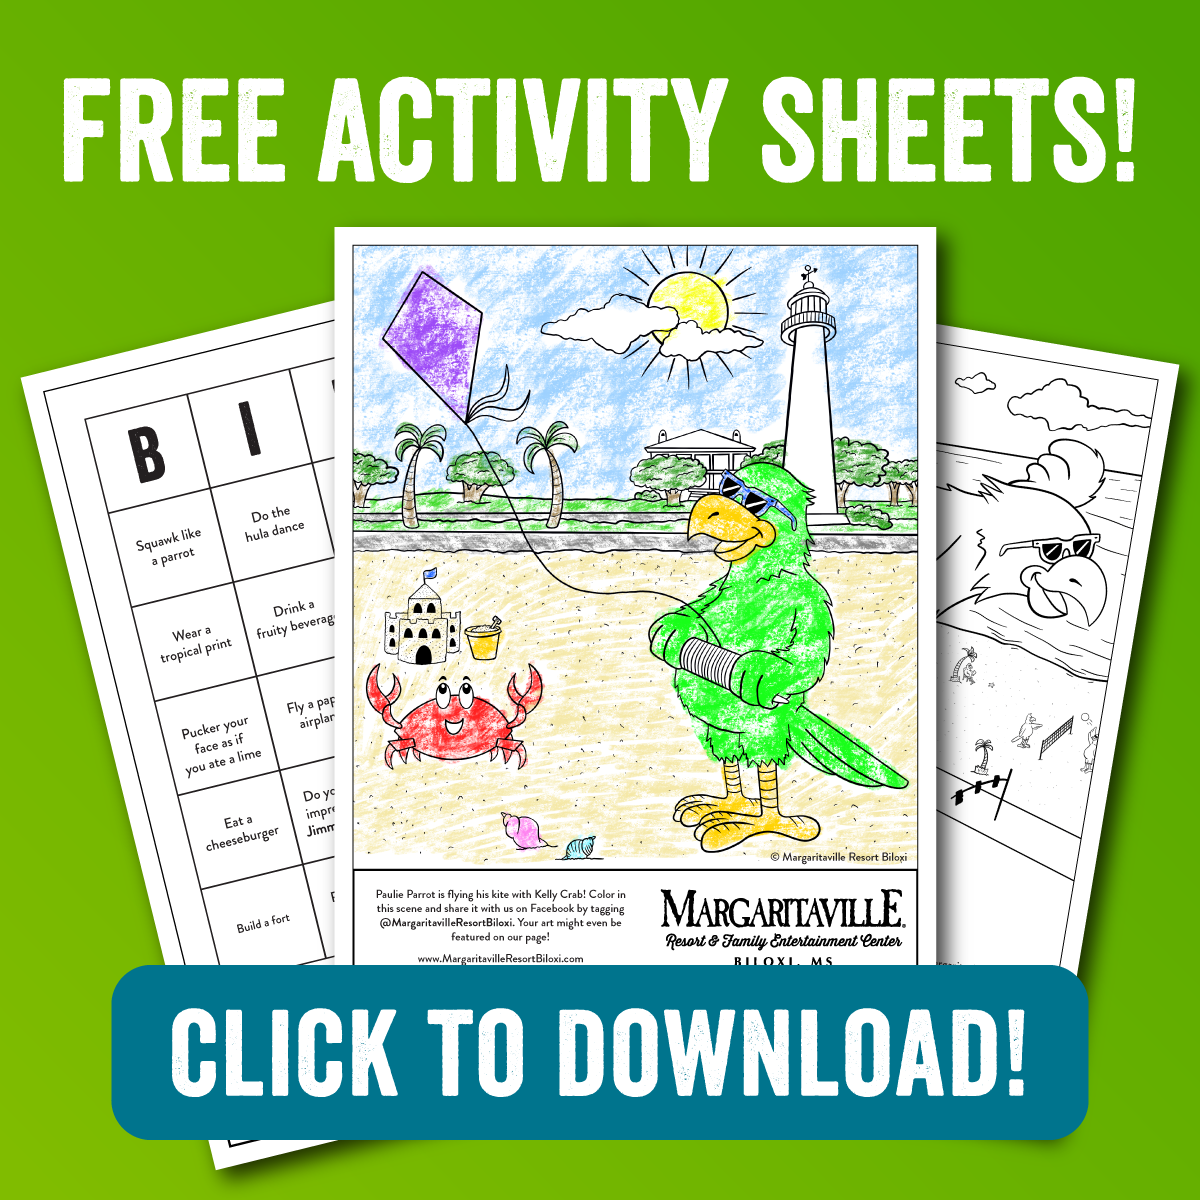 Free activity sheet download button